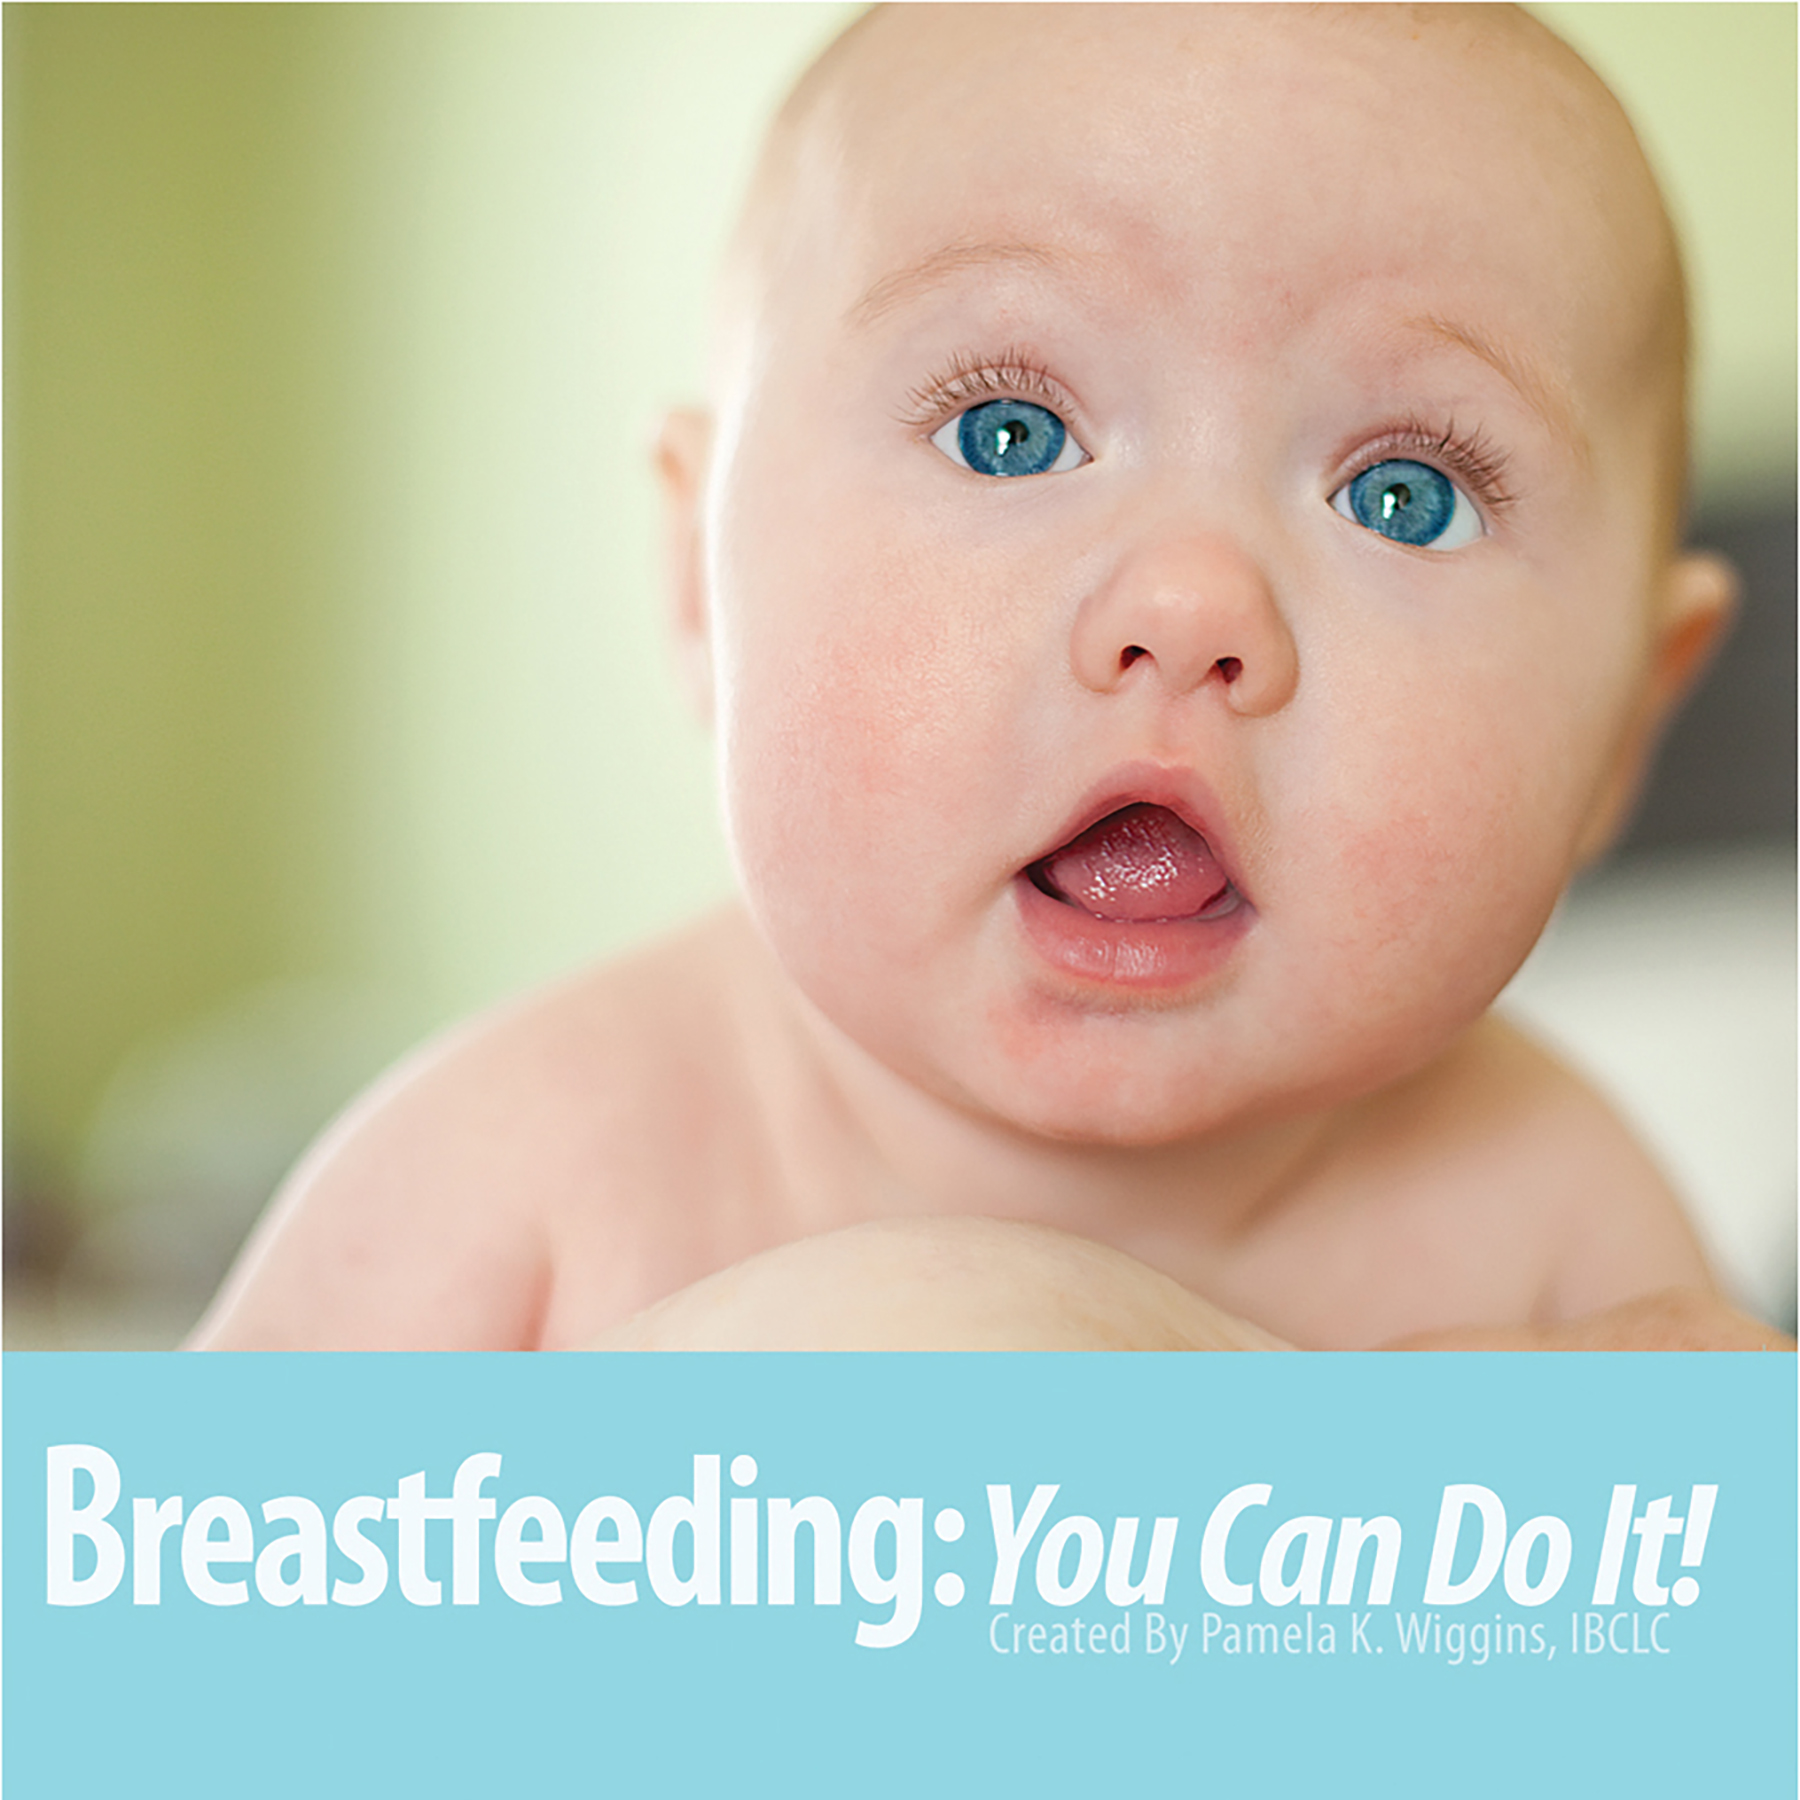 Breastfeeding You Can Do It DVD cover closeup of blue-eyed baby mouth open, Childbirth Graphics, 47949